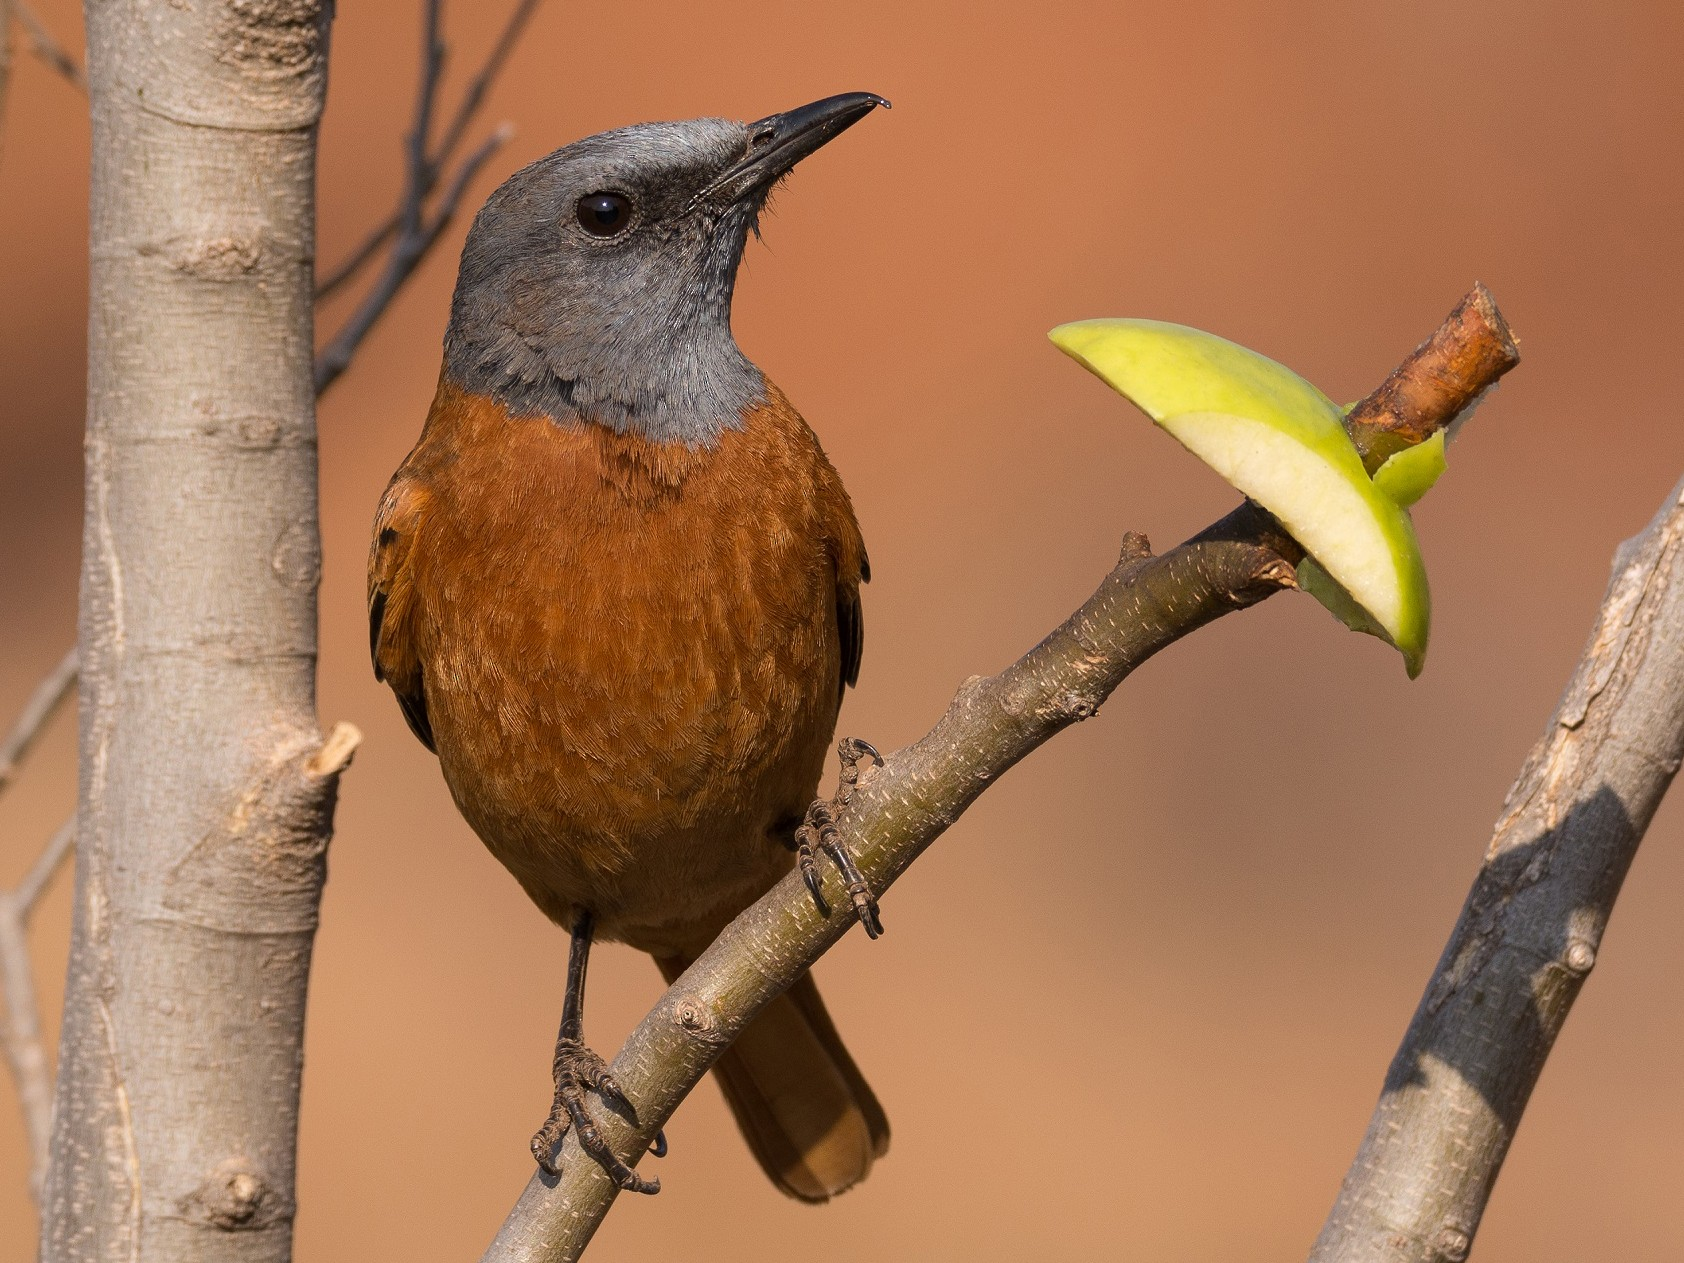 Cape Rock-Thrush - Ruben Gaasenbeek